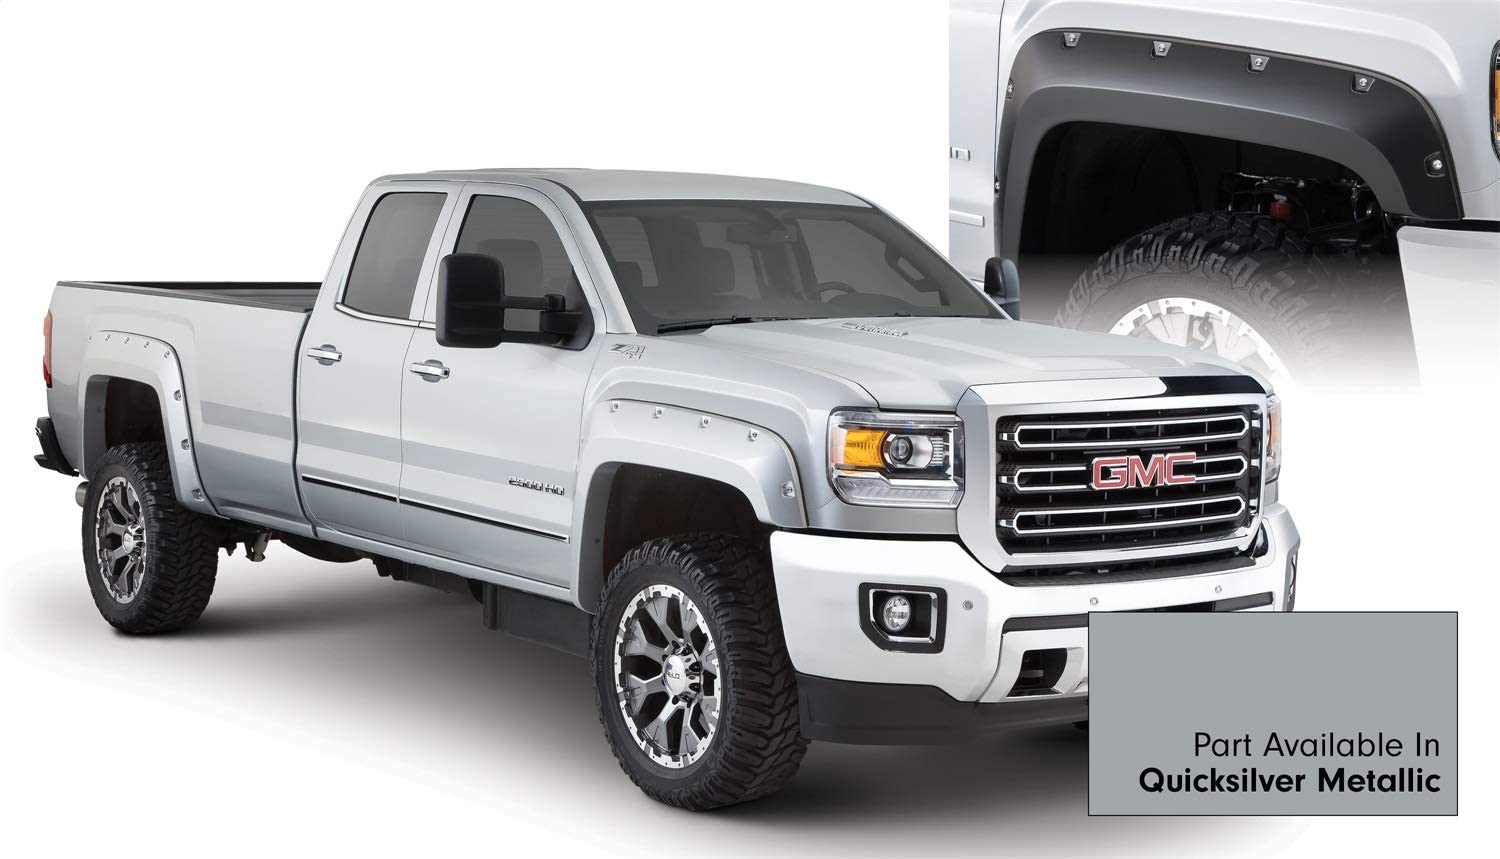 Compatible With/Replacement For Compatible With/Replacement For Bushwacker (B/W-RXG-942) Pocket Style Painted Fender Flares - Fits Sierra 3500 HD 2010-2011